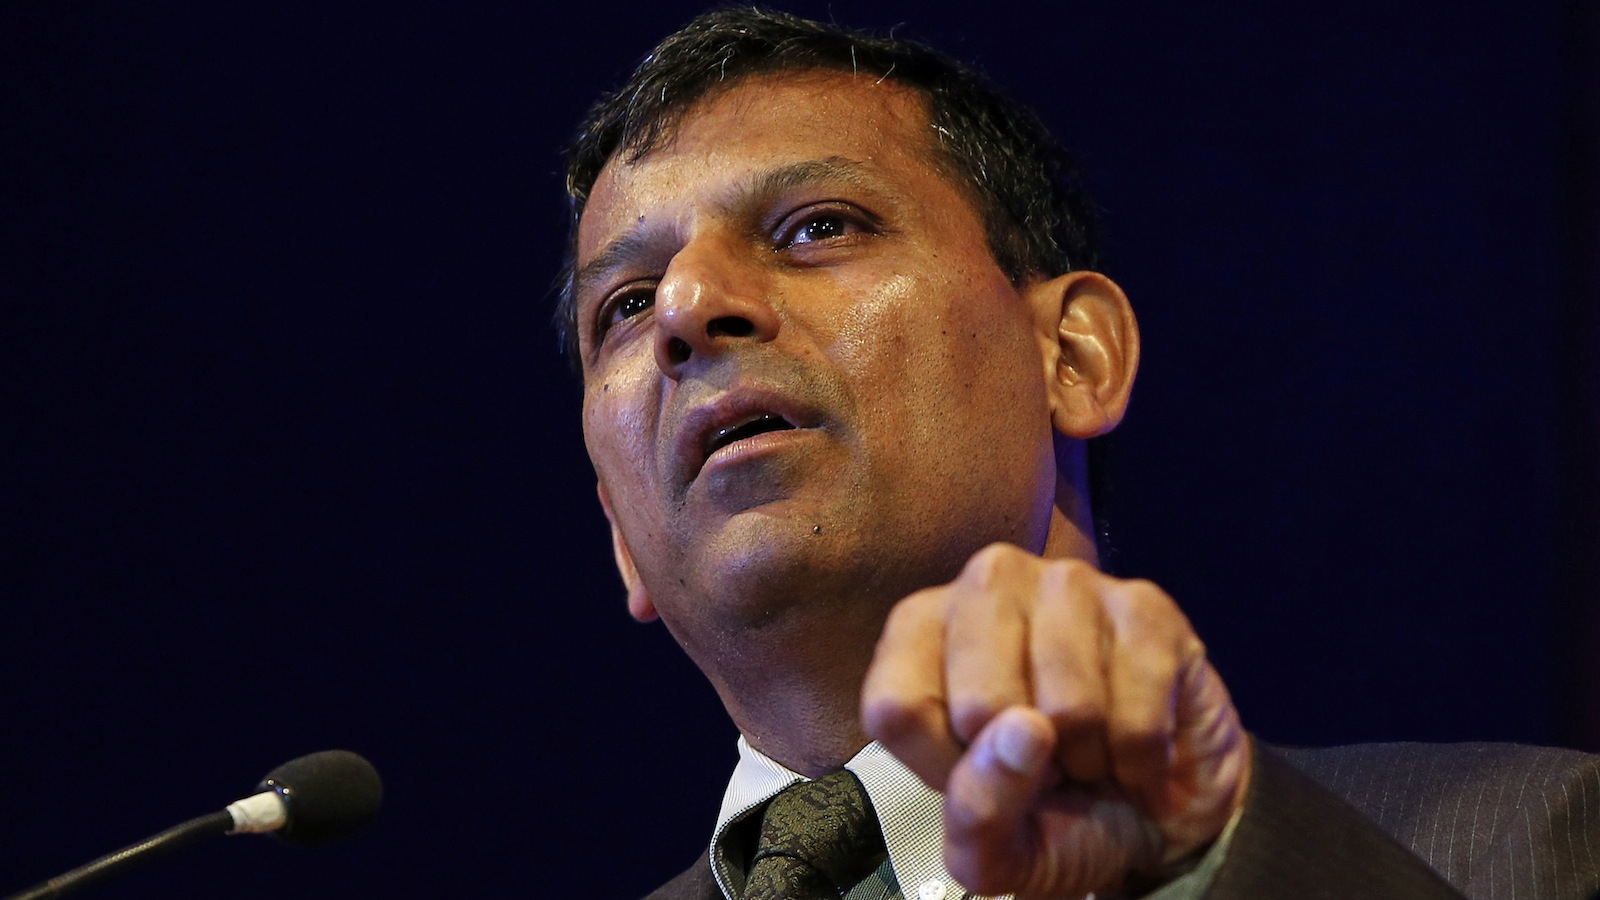 Reserve Bank of India (RBI) Governor Raghuram Rajan gestures while addressing students at a college in Mumbai September 16, 2014. India's central bank is limiting the country's reliance on foreign debt and will continue to do so, Rajan said on Tuesday.